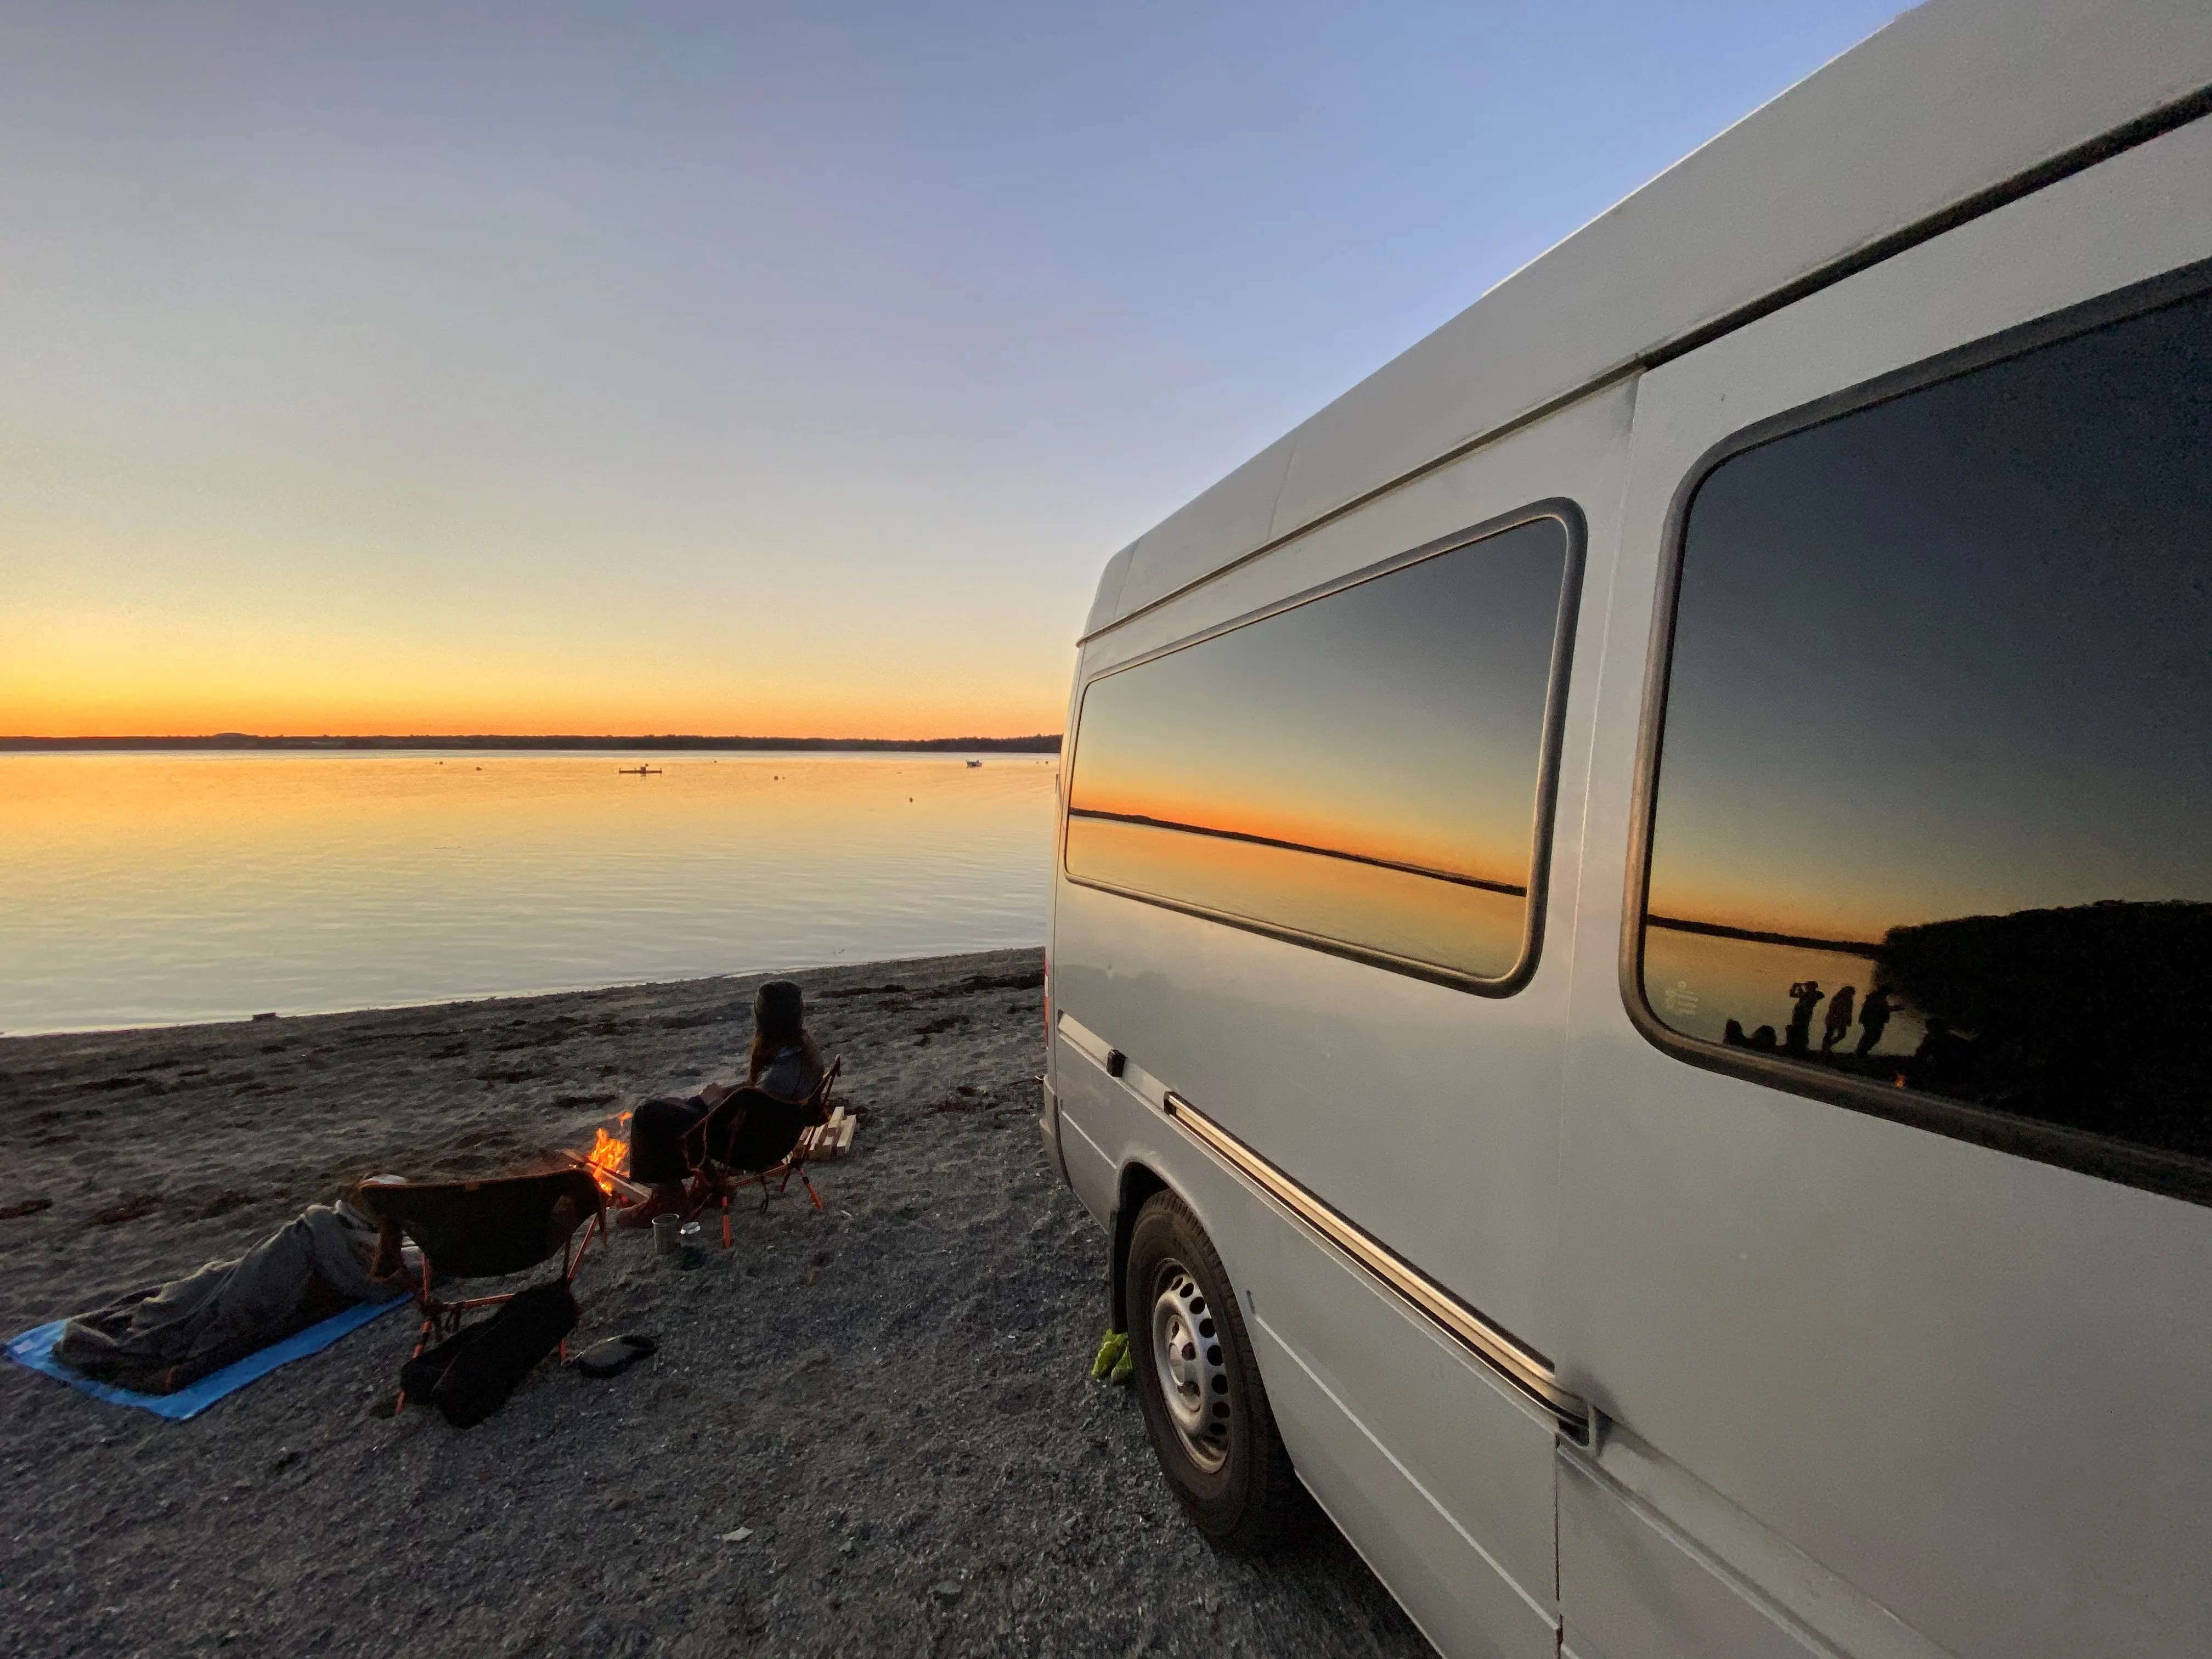 During the COVID-19 pandemic, Corey and JennaLynn Self upgraded a used Mercedes-Benz Freightliner Sprinter van into a vehicle fit for life on the road. They've since left their apartment in Washington, D.C. to work remotely from their van in destinations throughout the country, showcasing their adventures on Instagram @drivingourselfs.